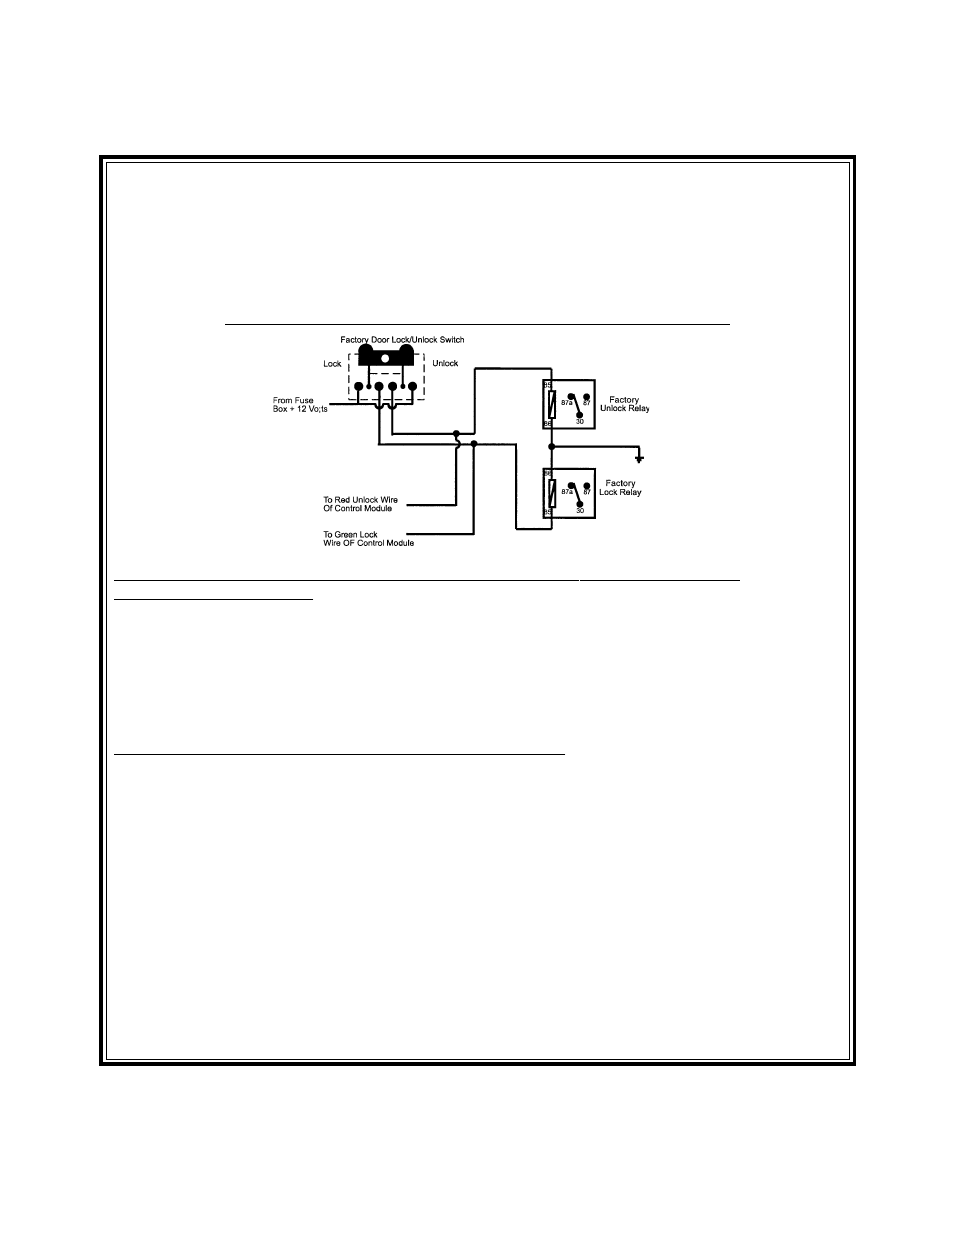 5 Pole Relay Wiring Diagram Door Lock - Catalogue of Schemas  Pole Relay Wiring Diagram Door Lock on